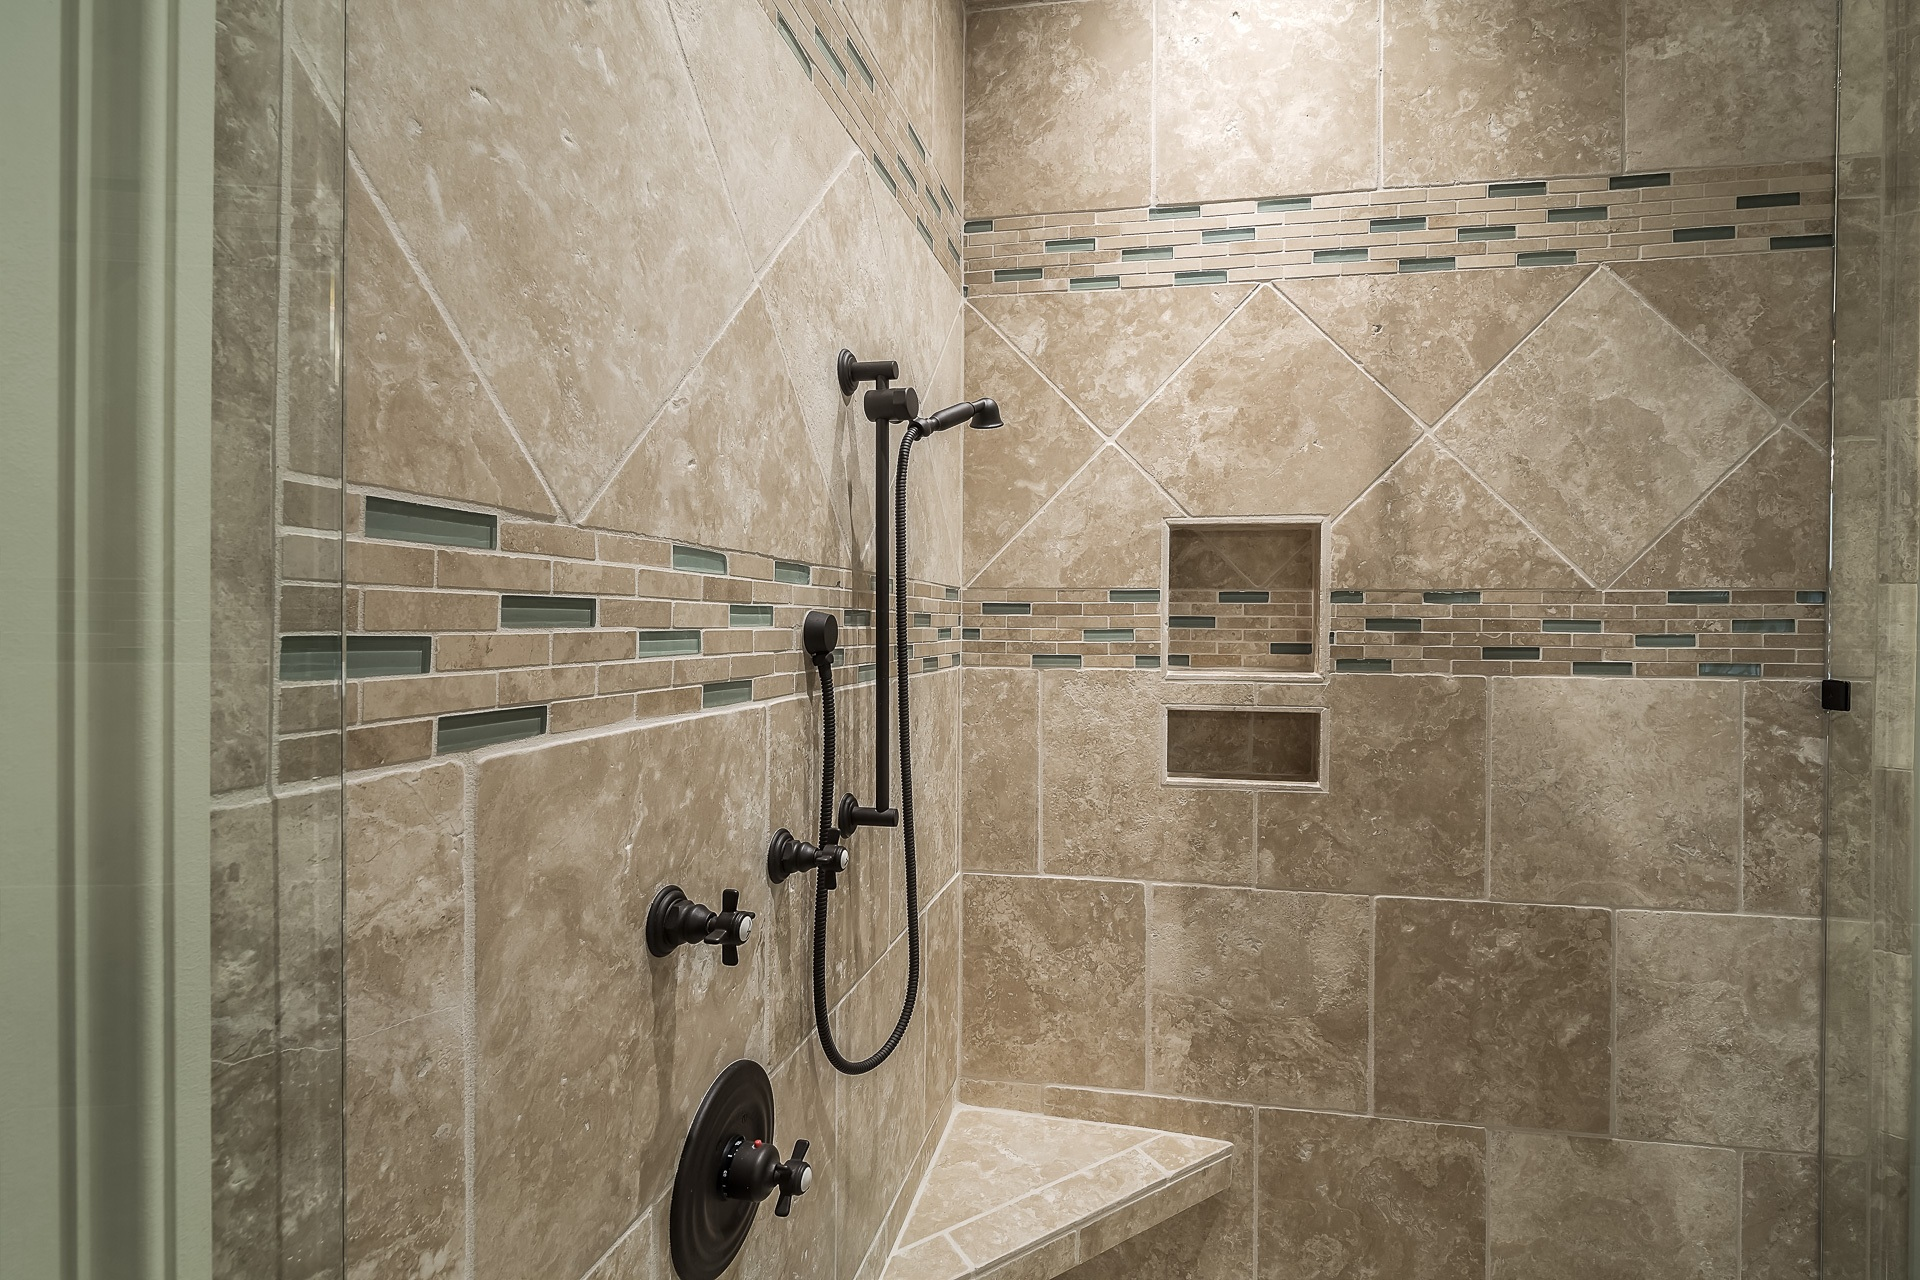 Choosing the Tile That's Right for Your Room